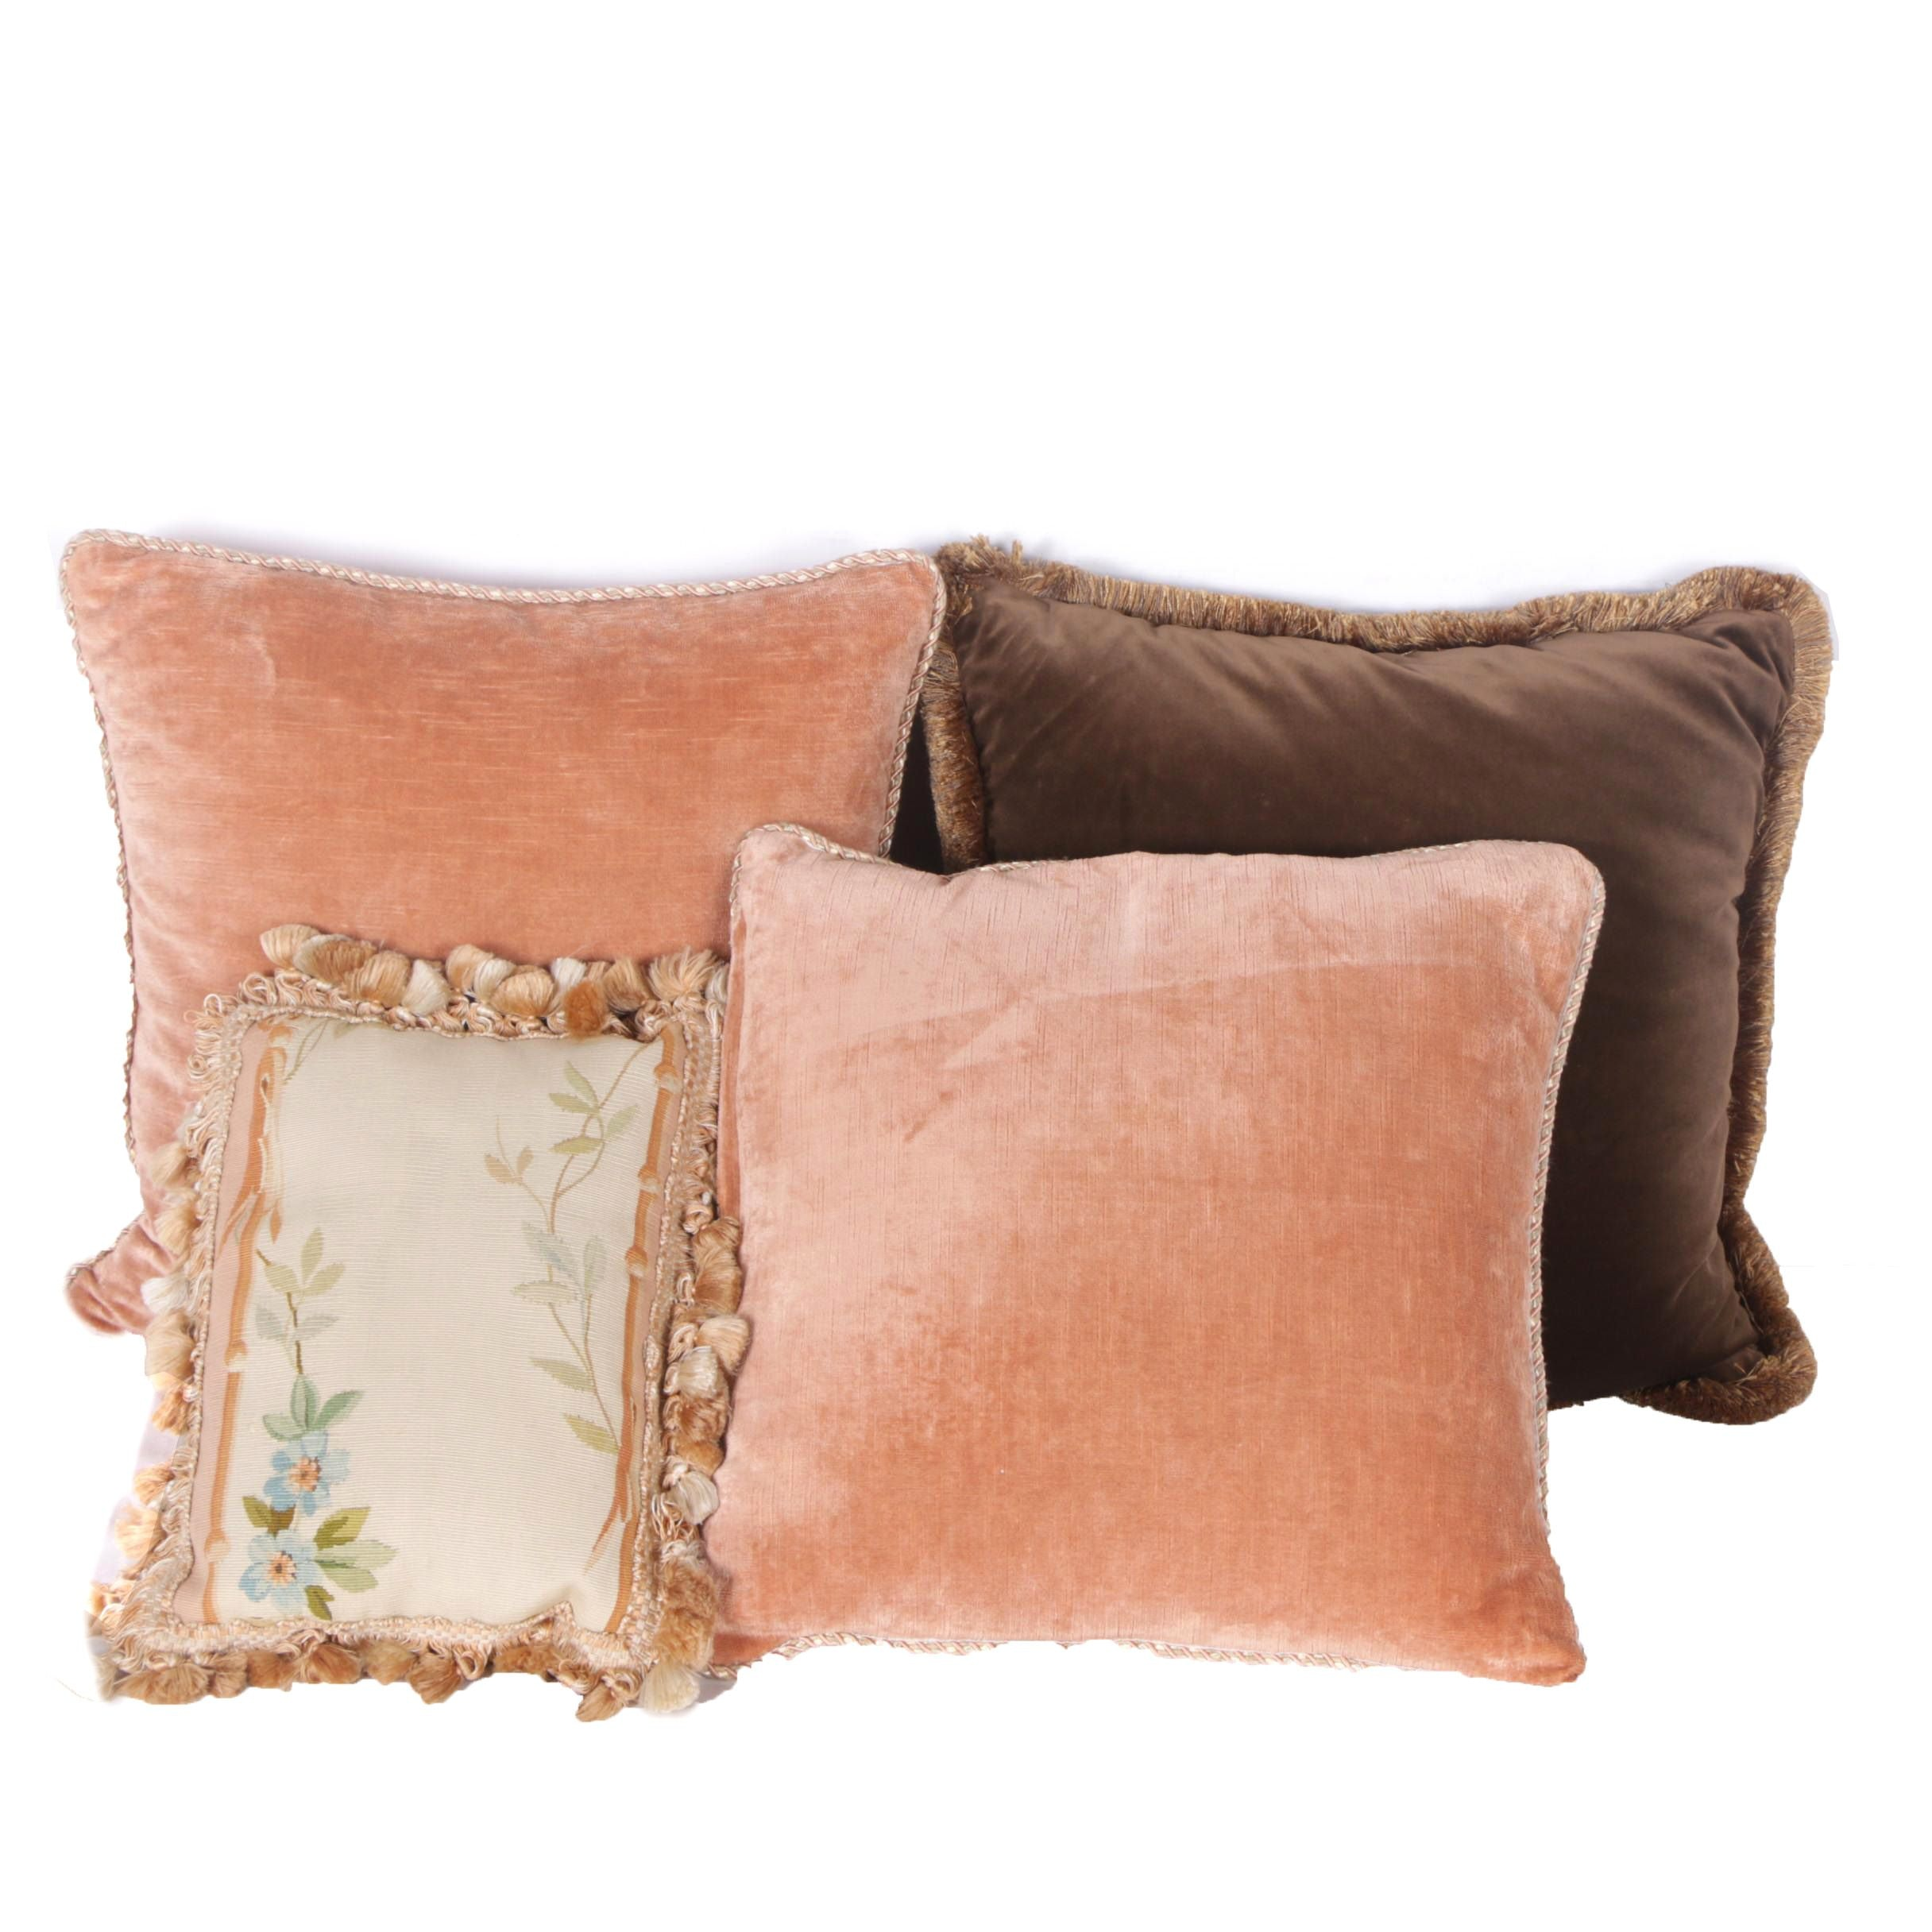 Vintage Throw Pillows with Decorative Trim